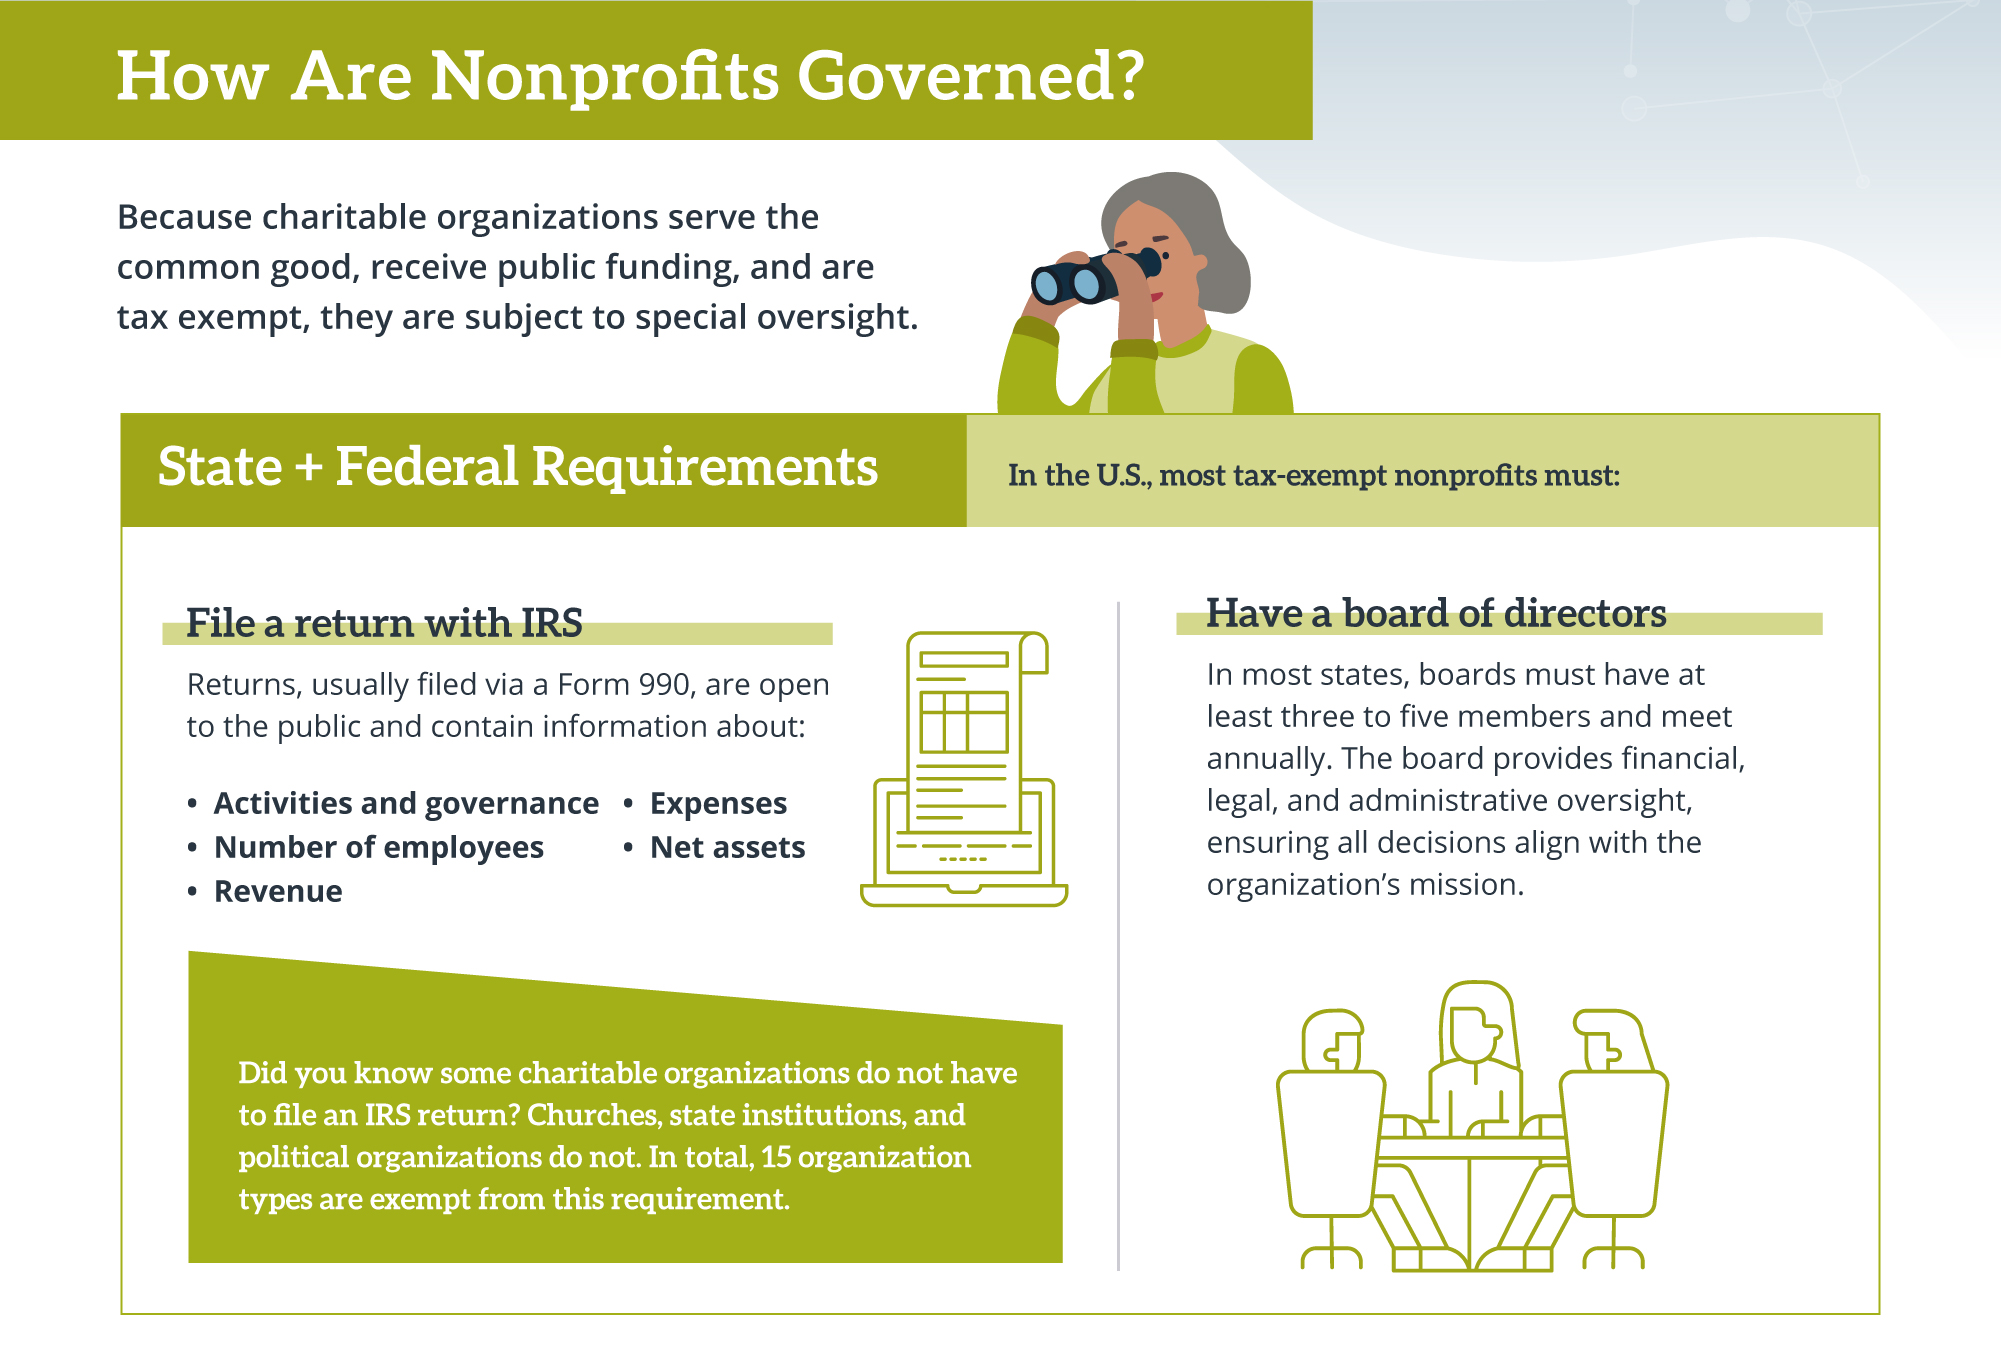 How are nonprofits governed?